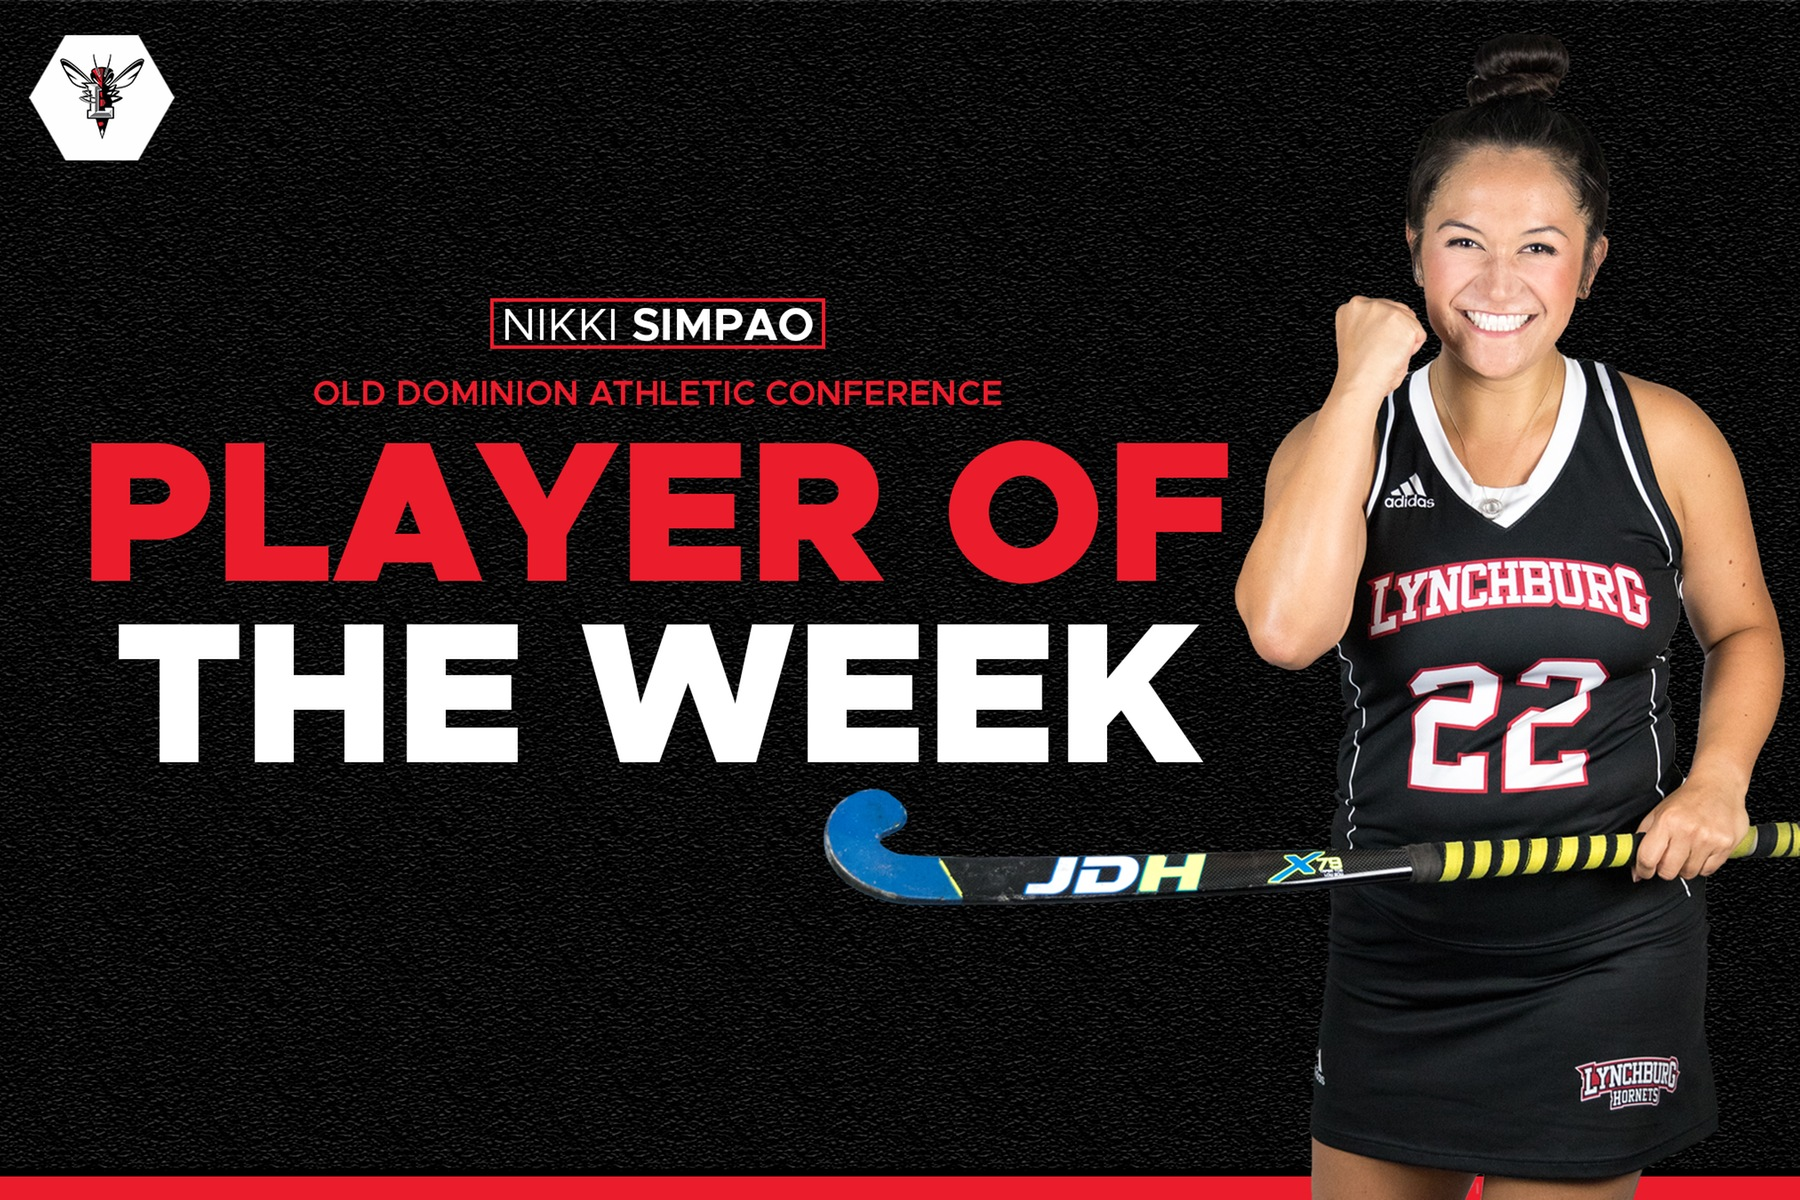 Nikki Simpao pumping her fist. Graphic with black background and ODAC player of the week text. Lynchburg logo in corner.